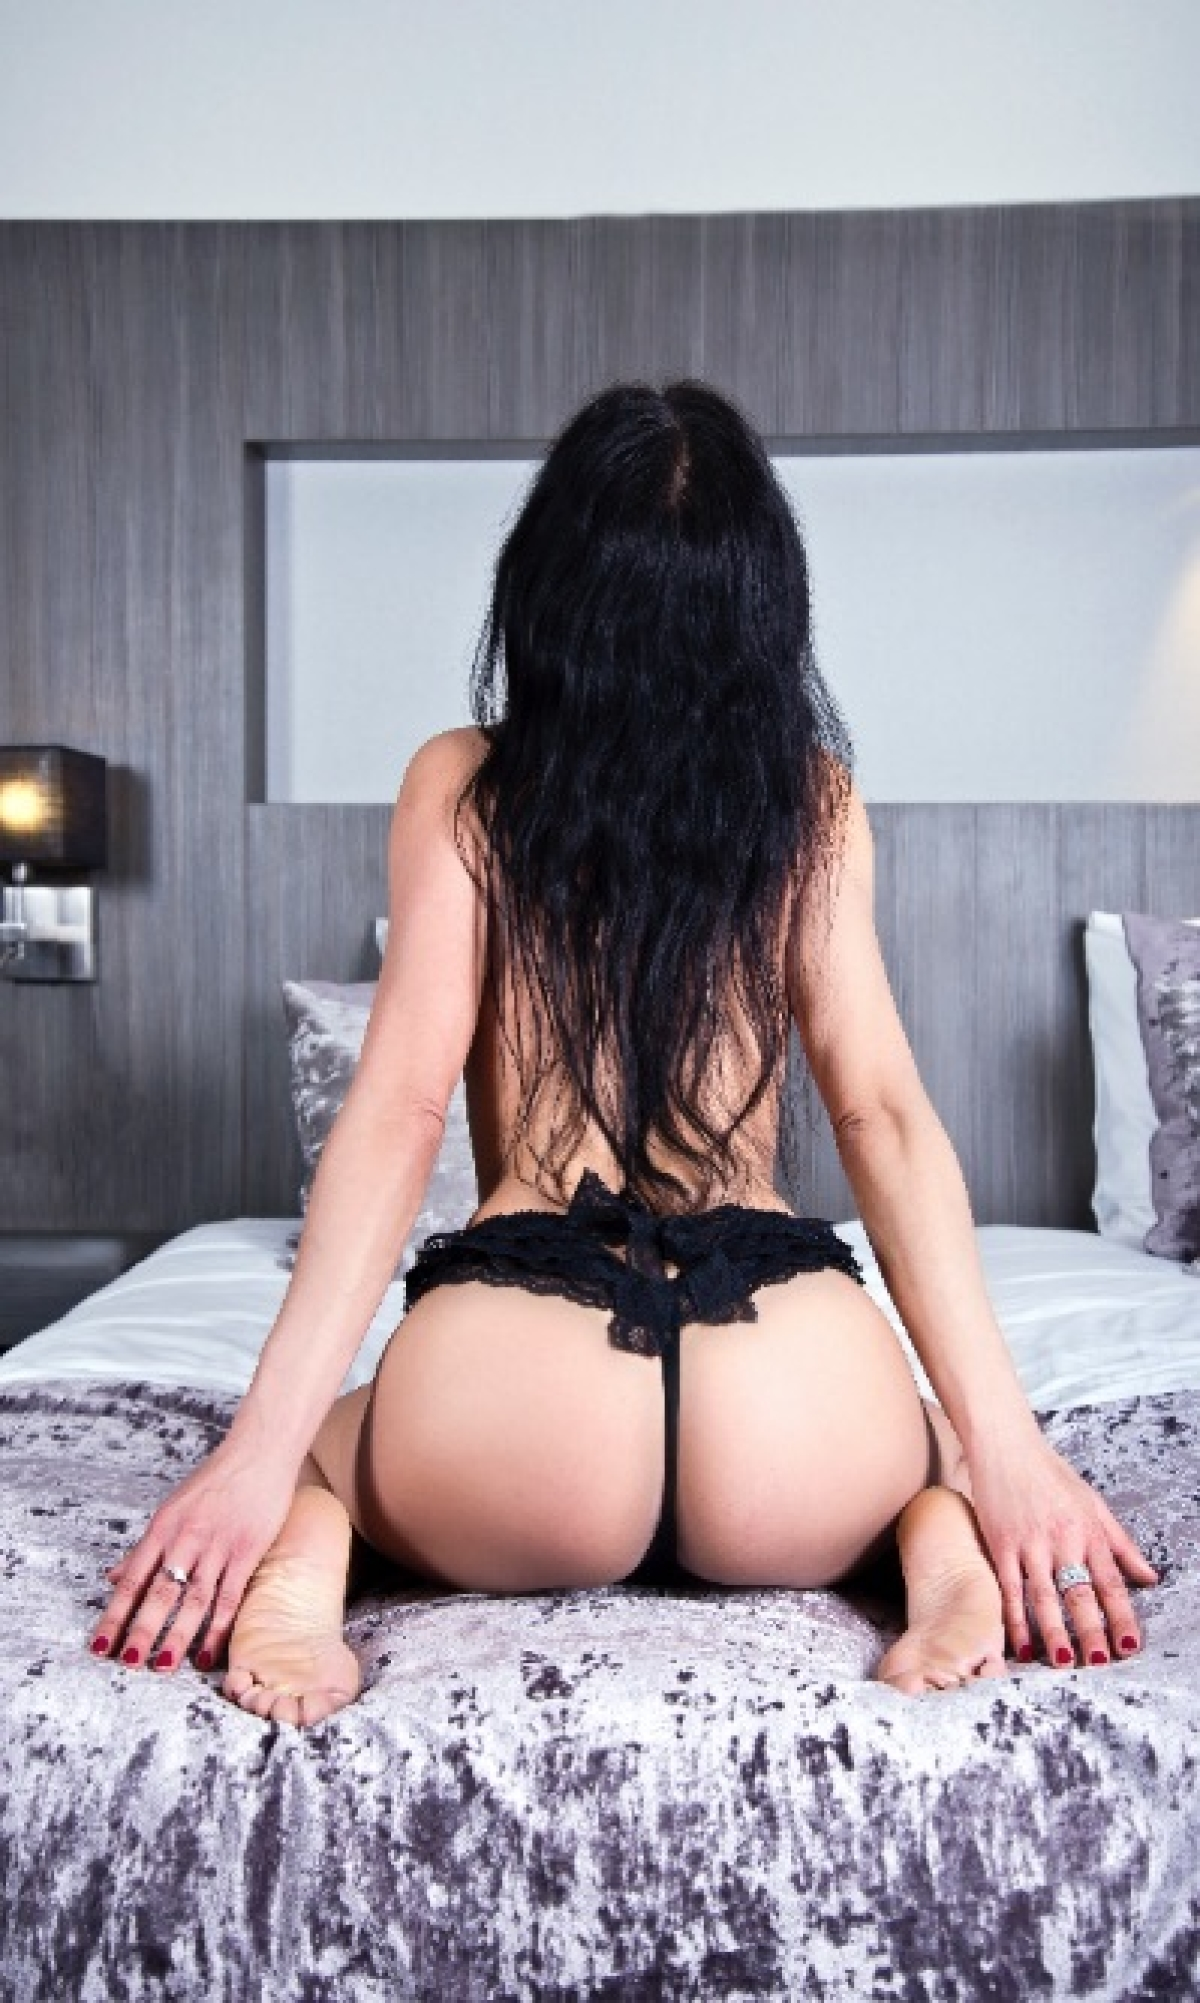 high class escort worden webcam seks nl